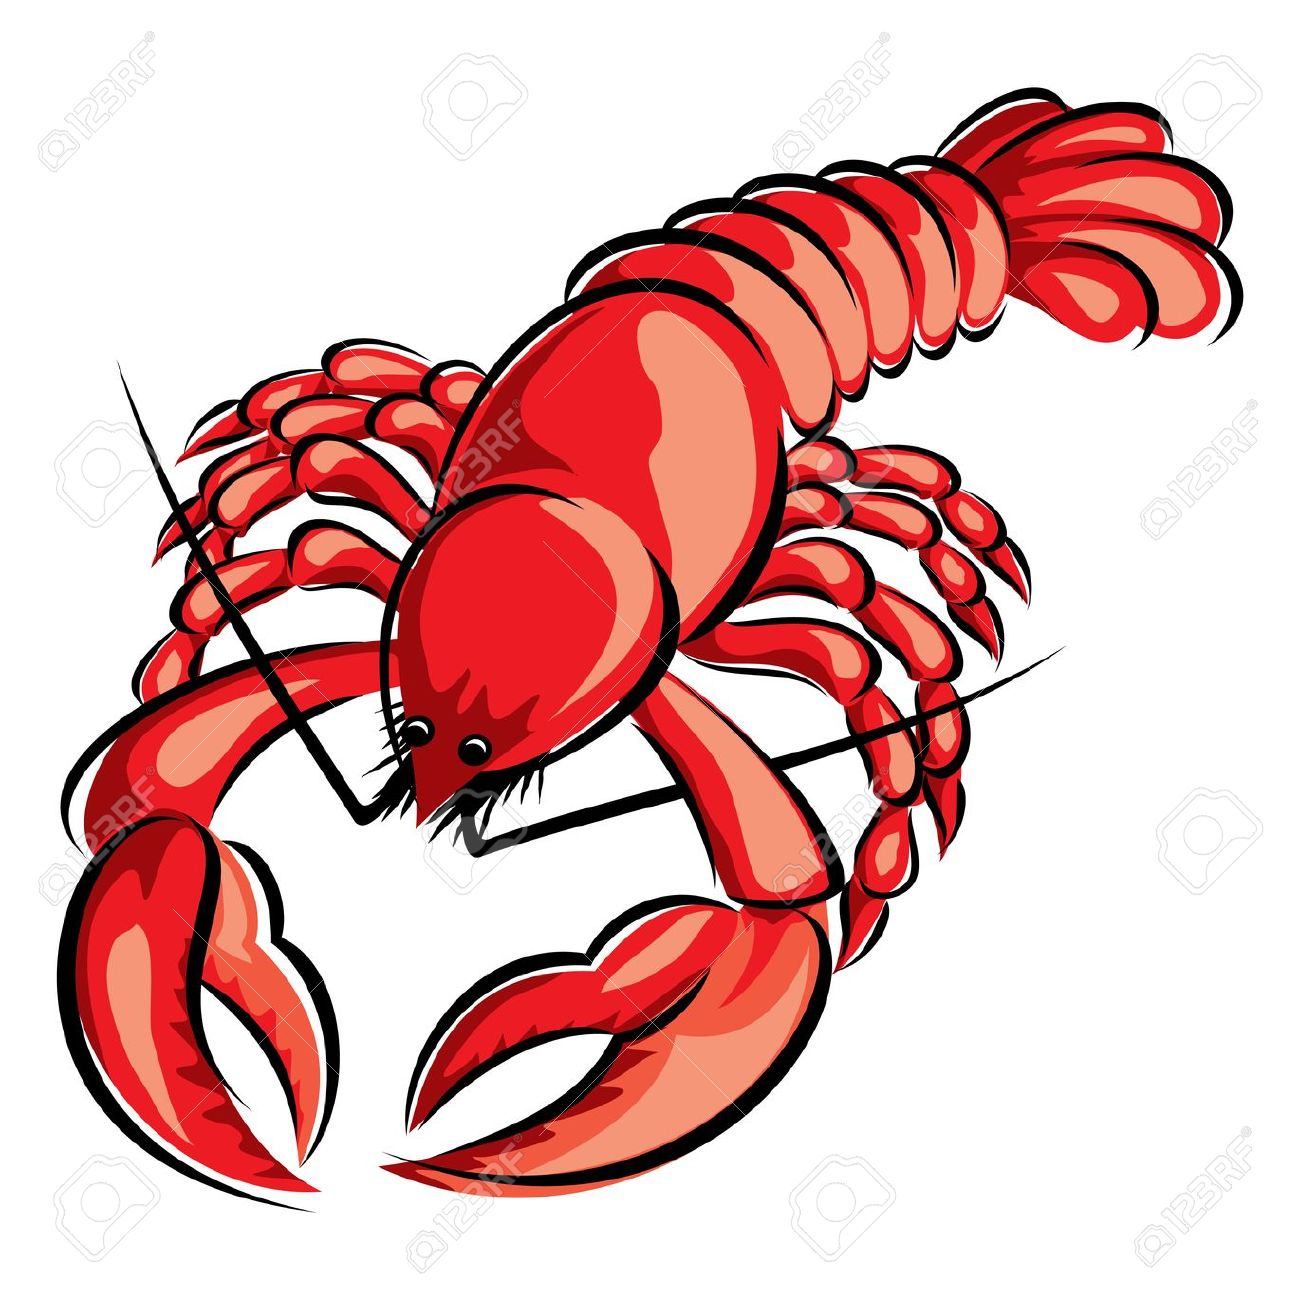 Red Lobster Stock Vector Illustration And Royalty Free Red Lobster